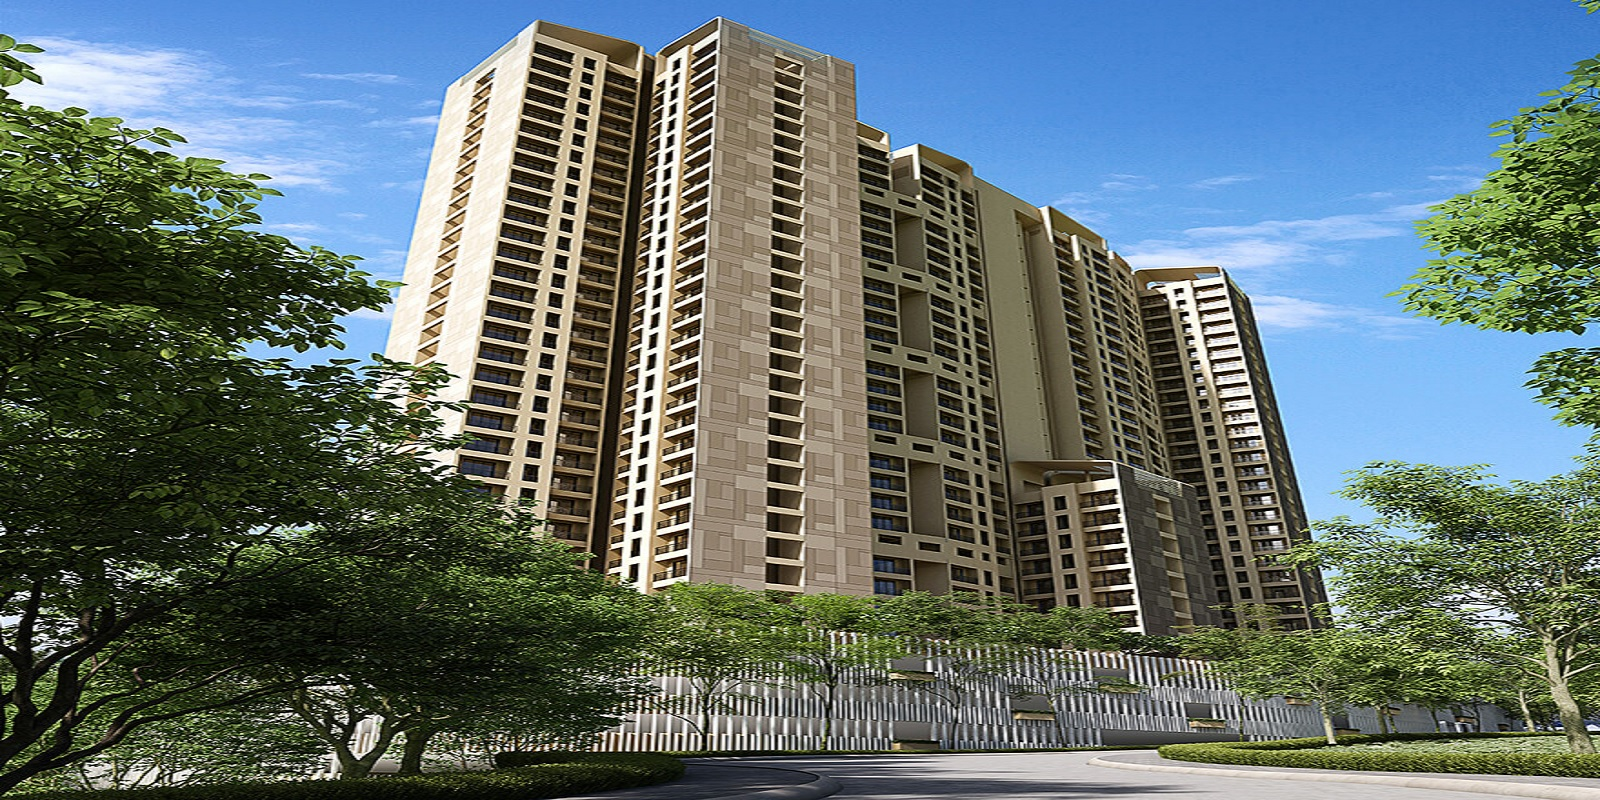 raunak bliss phase a a3 project large image2